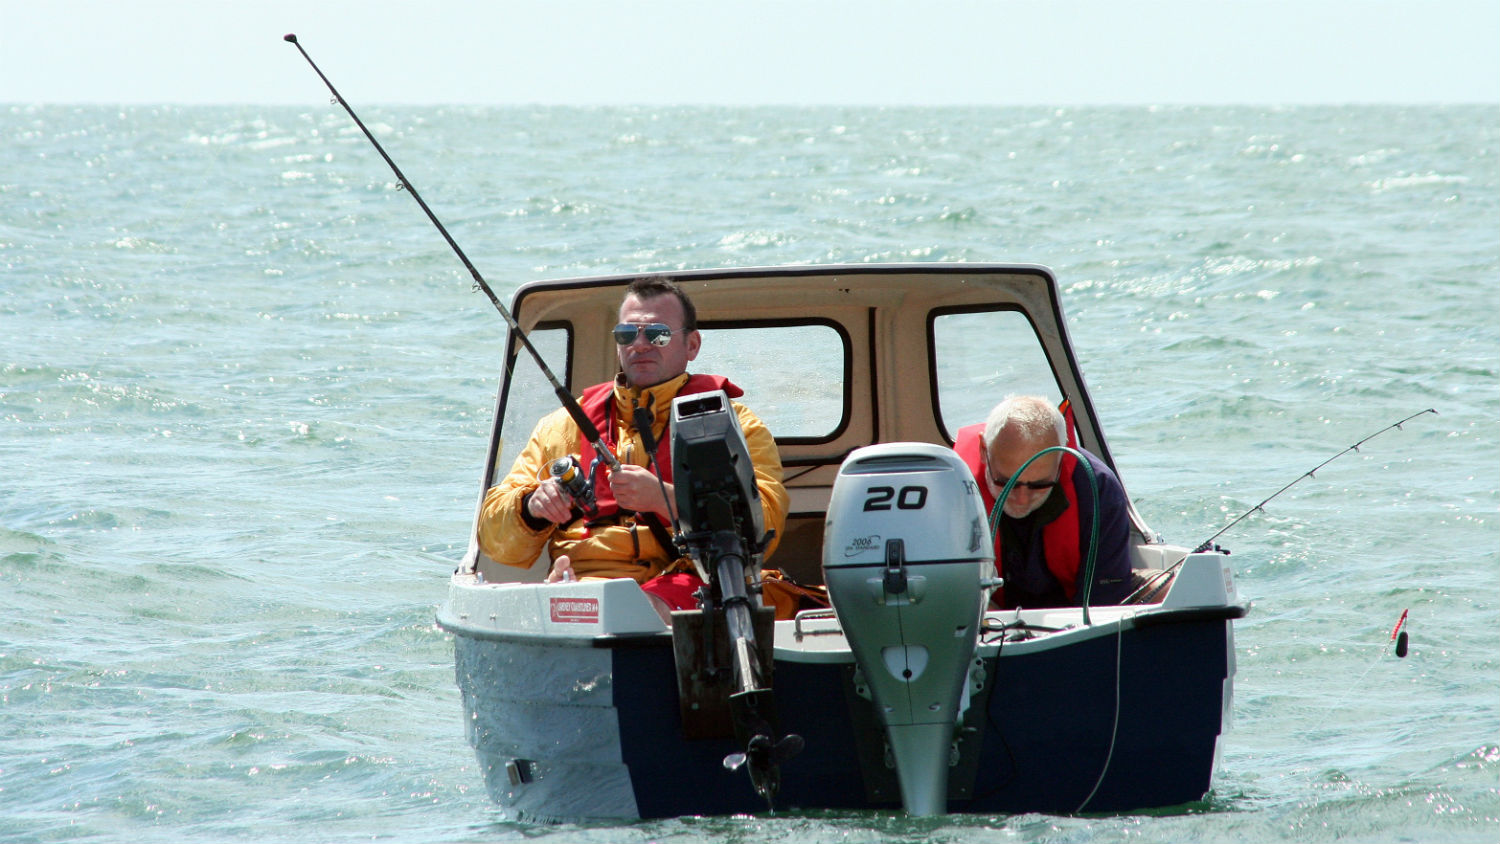 Two anglers fishing from a small boat and wearing lifejackets